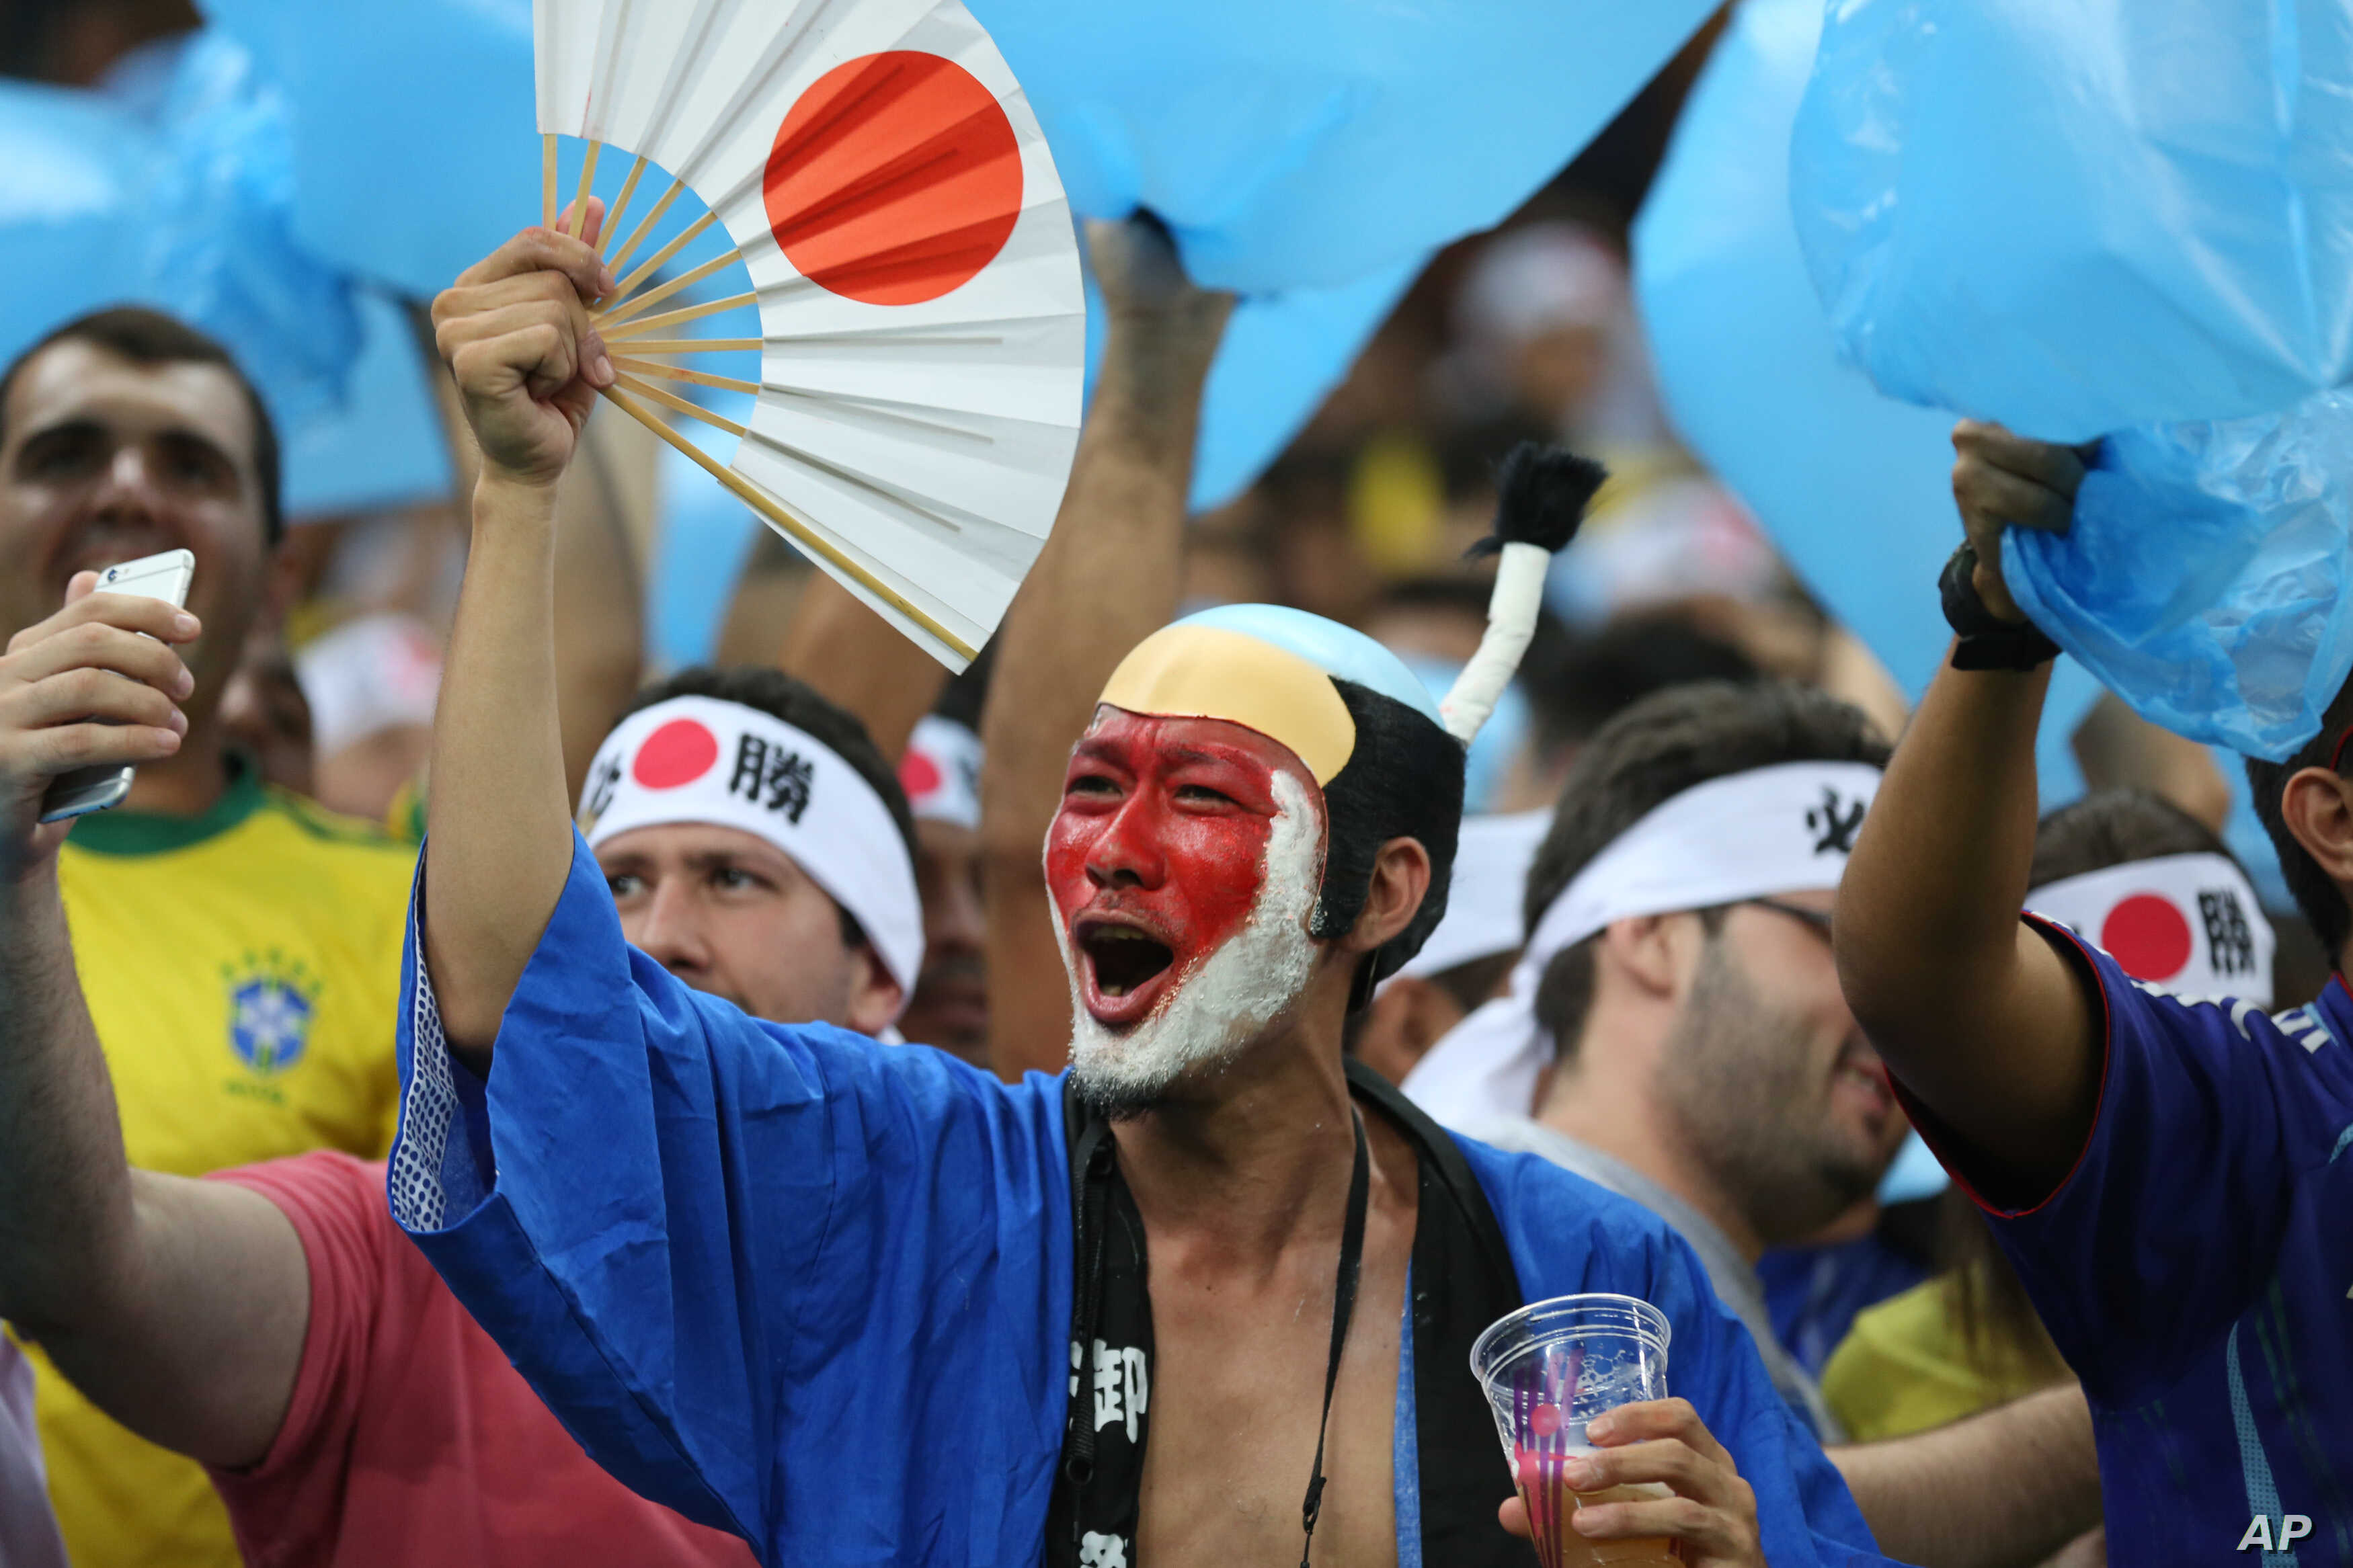 Fans of Japan's Olympic football team cheer for their team during a group B match of the men's Olympic football tournament between Japan and Nigeria at the Amazonia Arena, in Manaus, Brazil, Aug. 4, 2016.